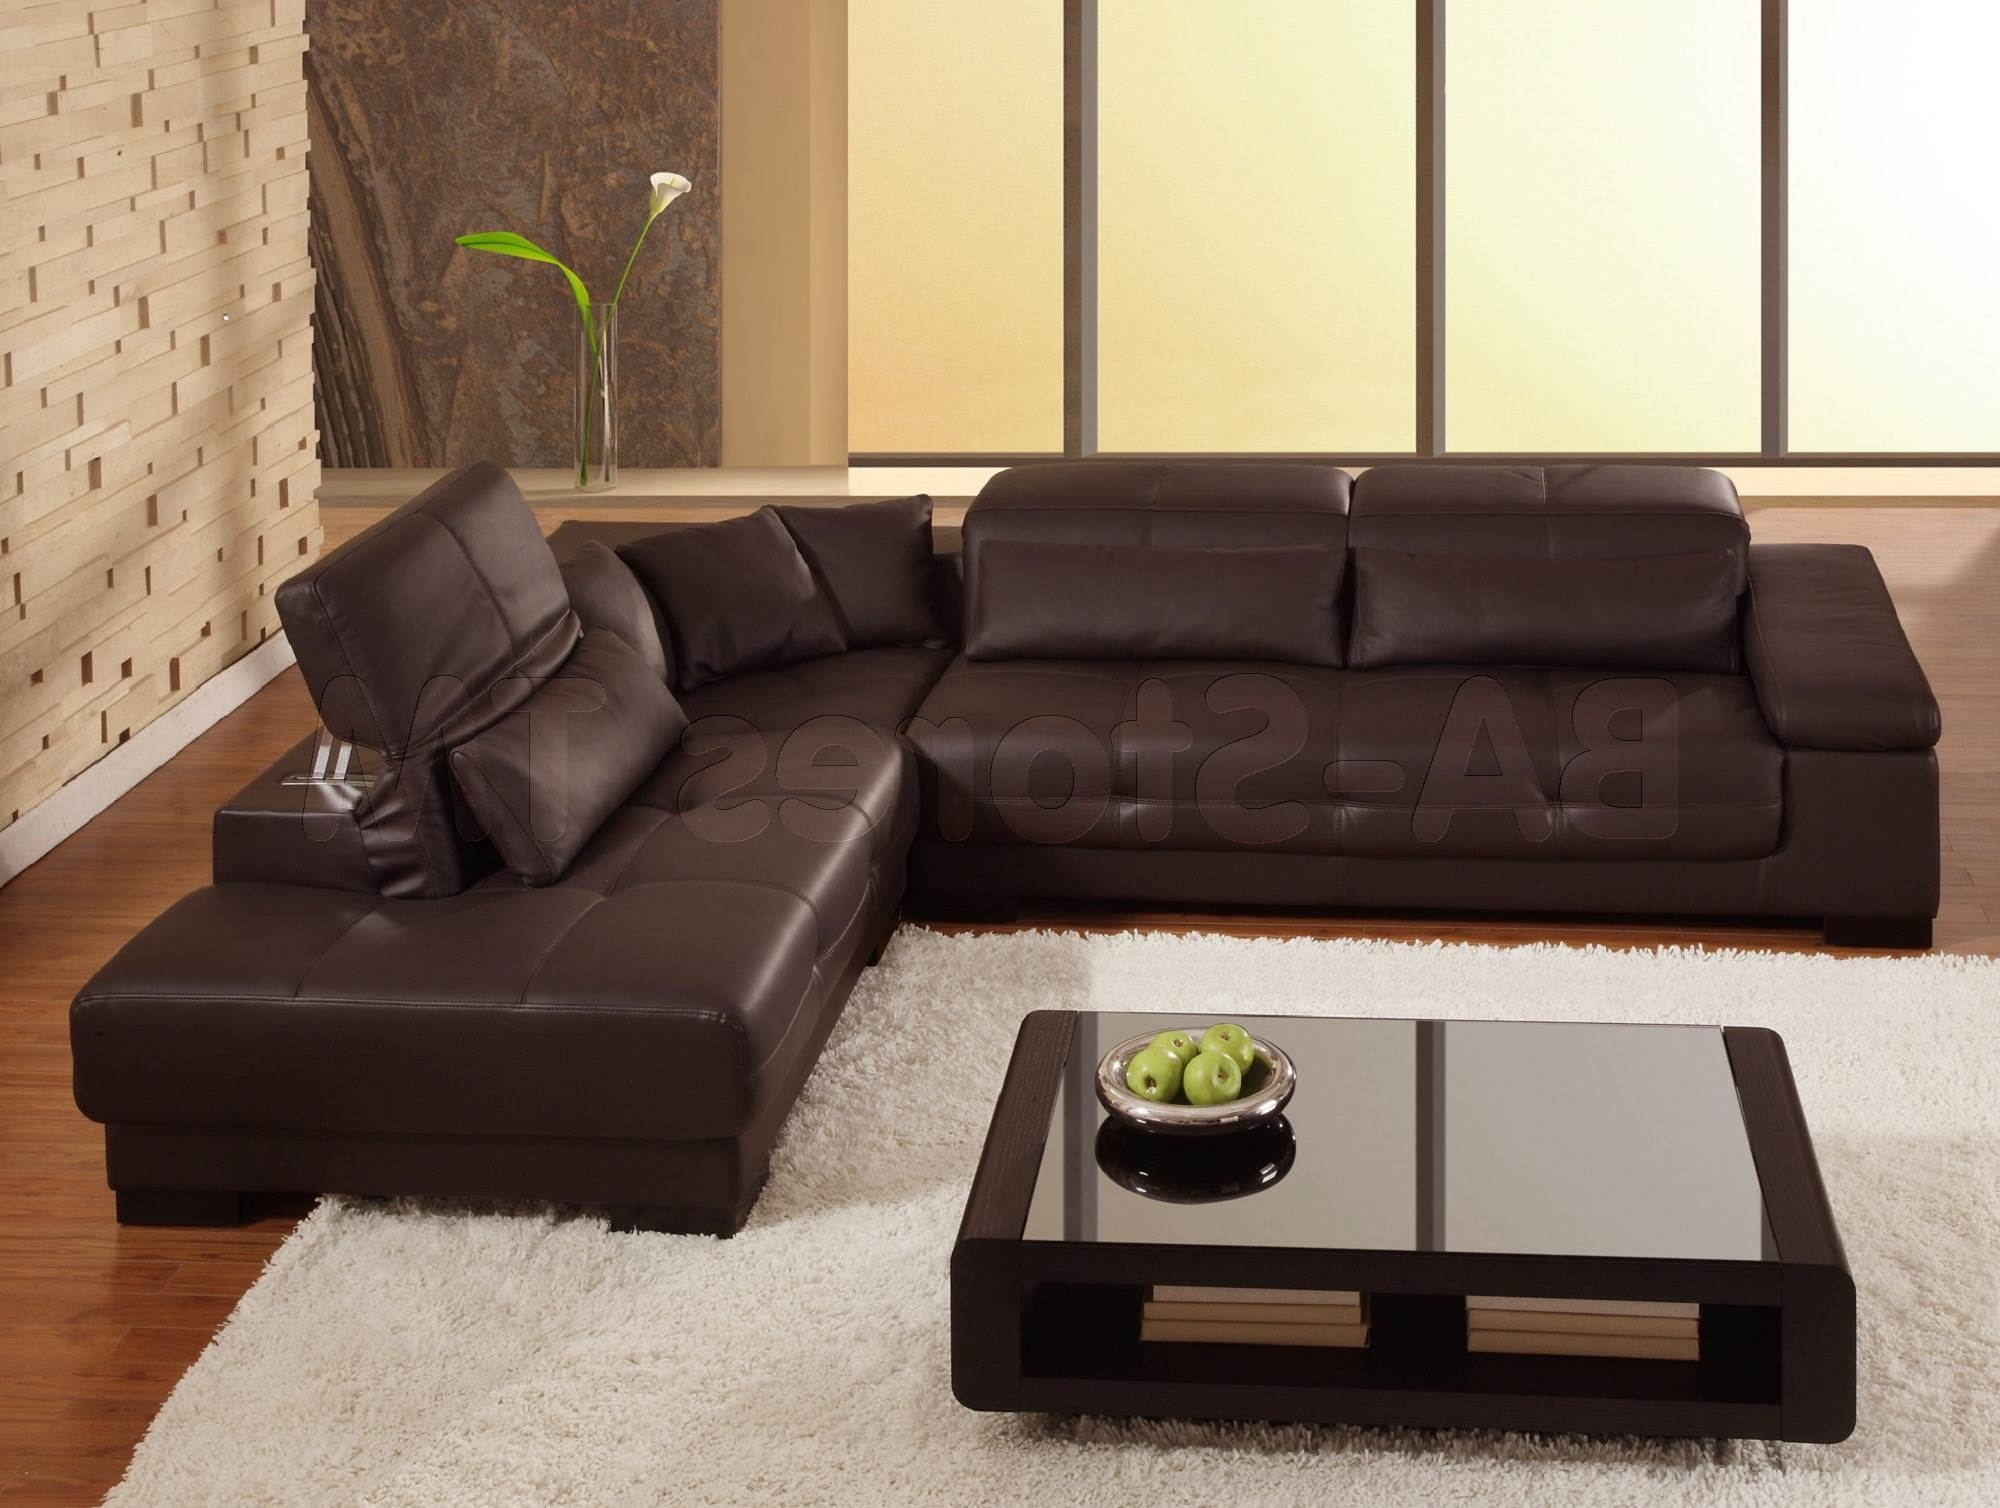 Newest Sectional Sofa Design: Top Rate Sectional Sofas Clearance Leather Inside Clearance Sectional Sofas (View 4 of 20)